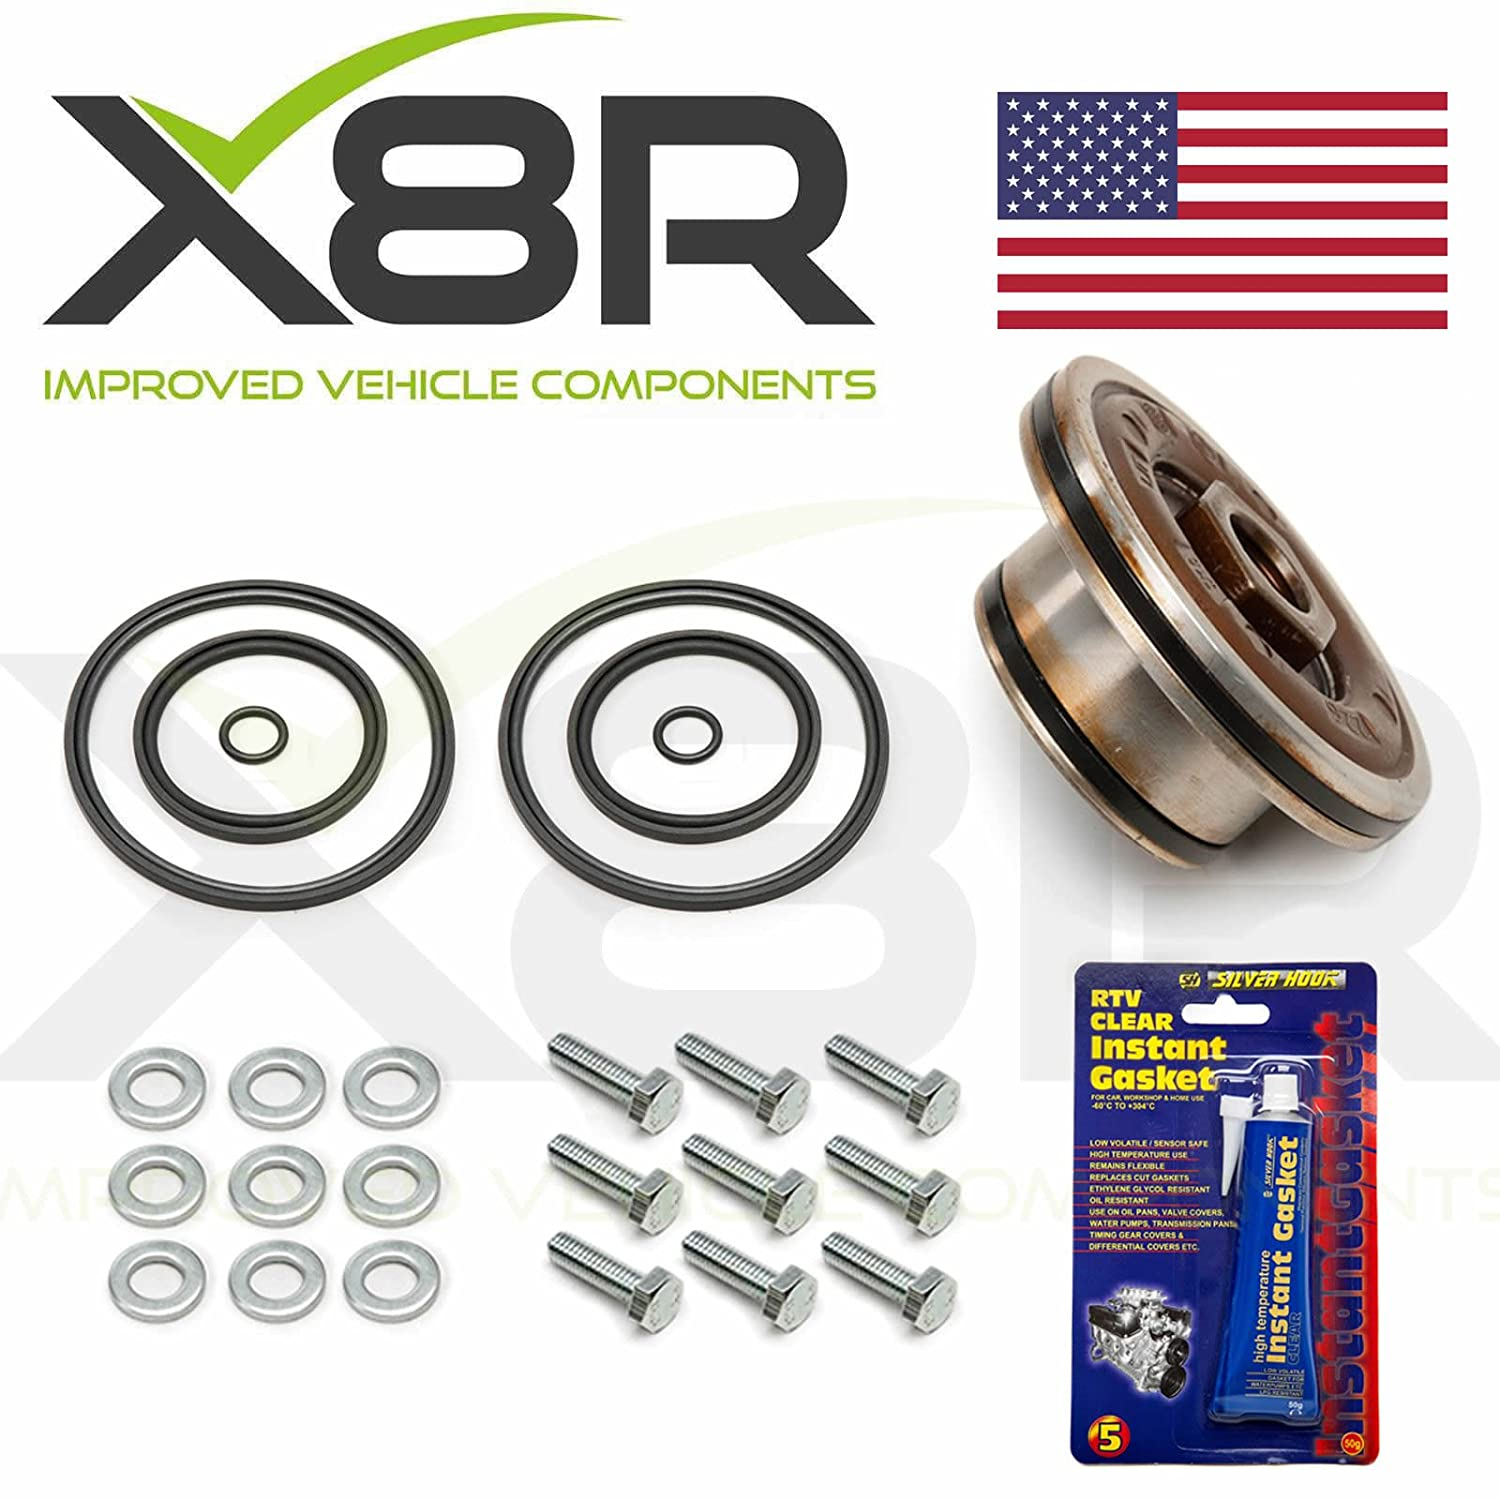 BMW DOUBLE TWIN DUAL VANOS SEALS UPGRADE REPAIR SET KIT M52 M54 M56 11361440142 PART: X8R28